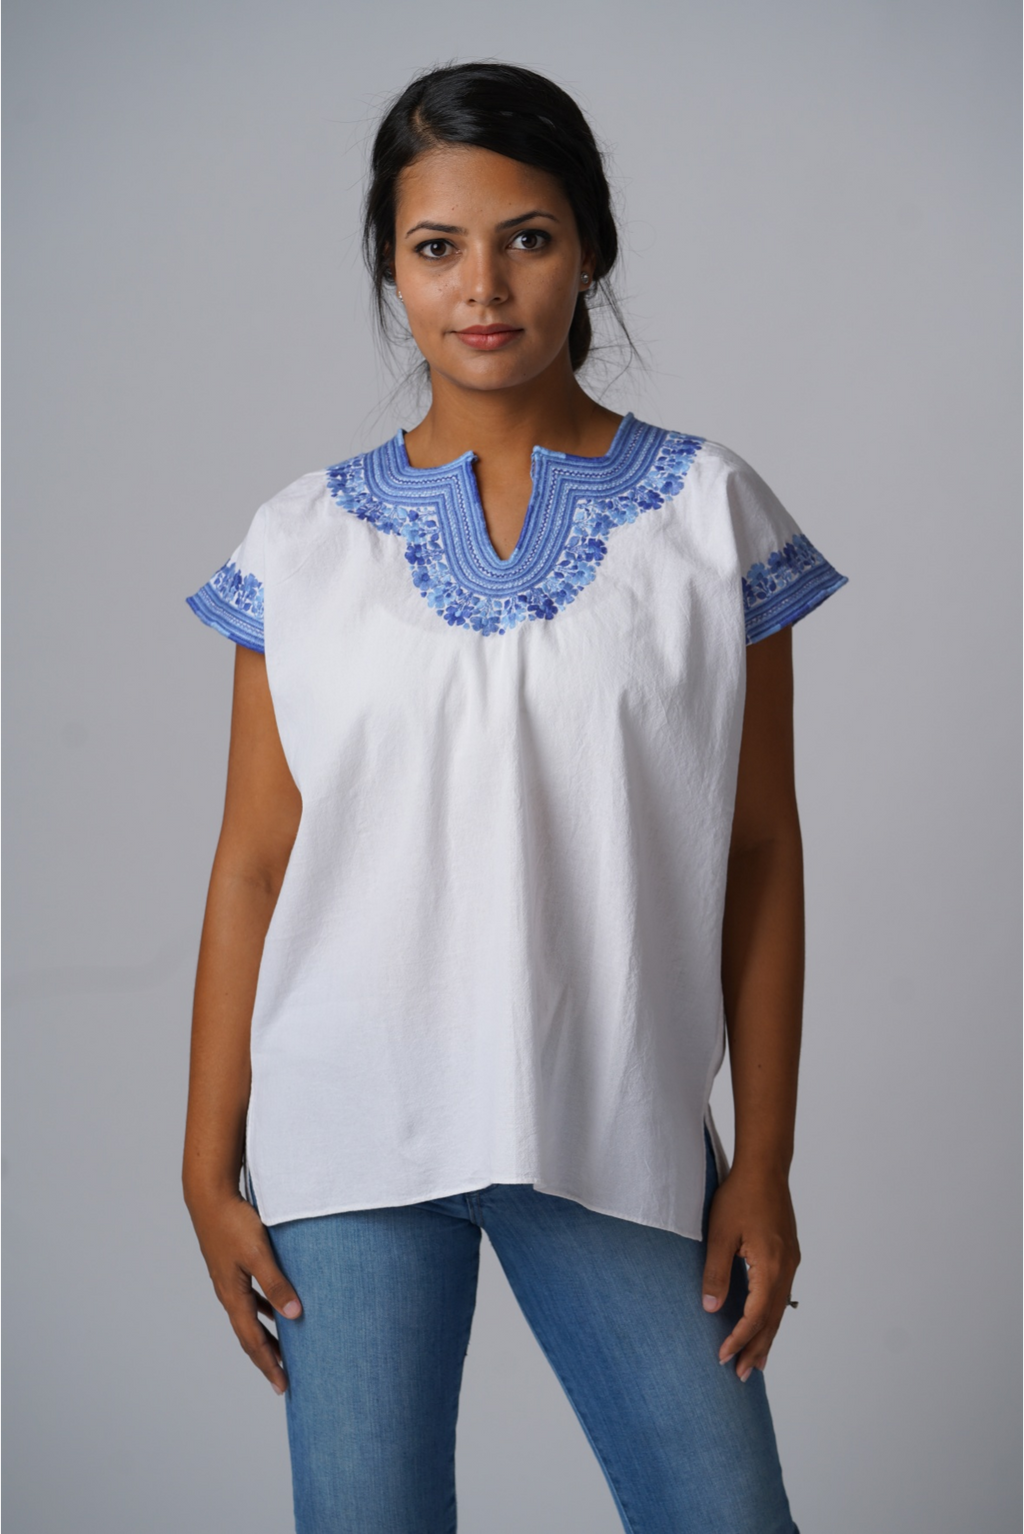 Kahlo Mexican Cotton Blouse - French Blue